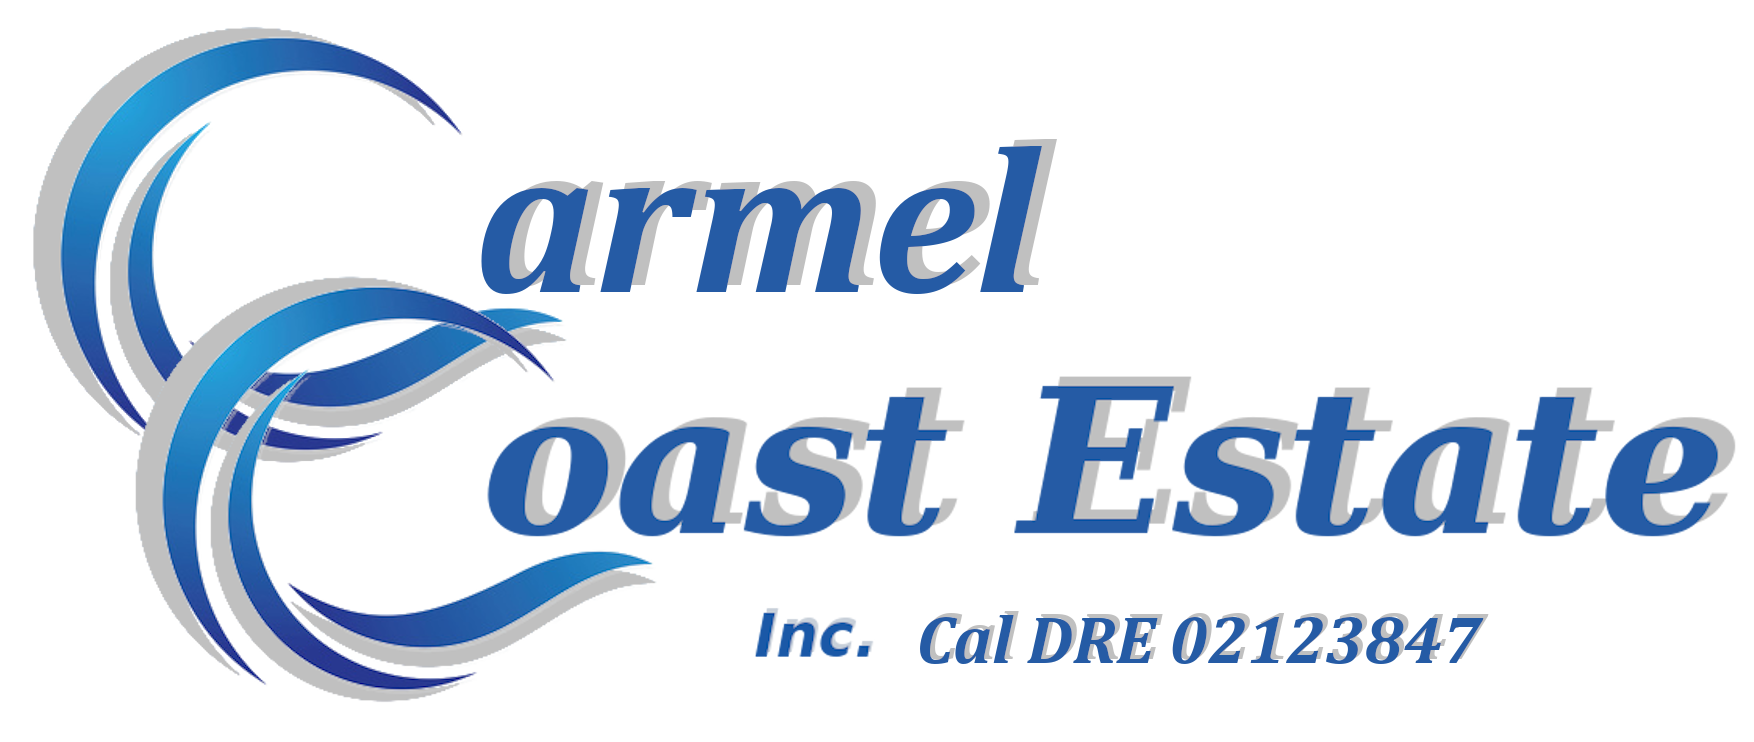 Carmel Coast Estate, Inc. Real Estate Sales & Property Management: Carmel, Monterey, Pacific Grove & Pebble Beach